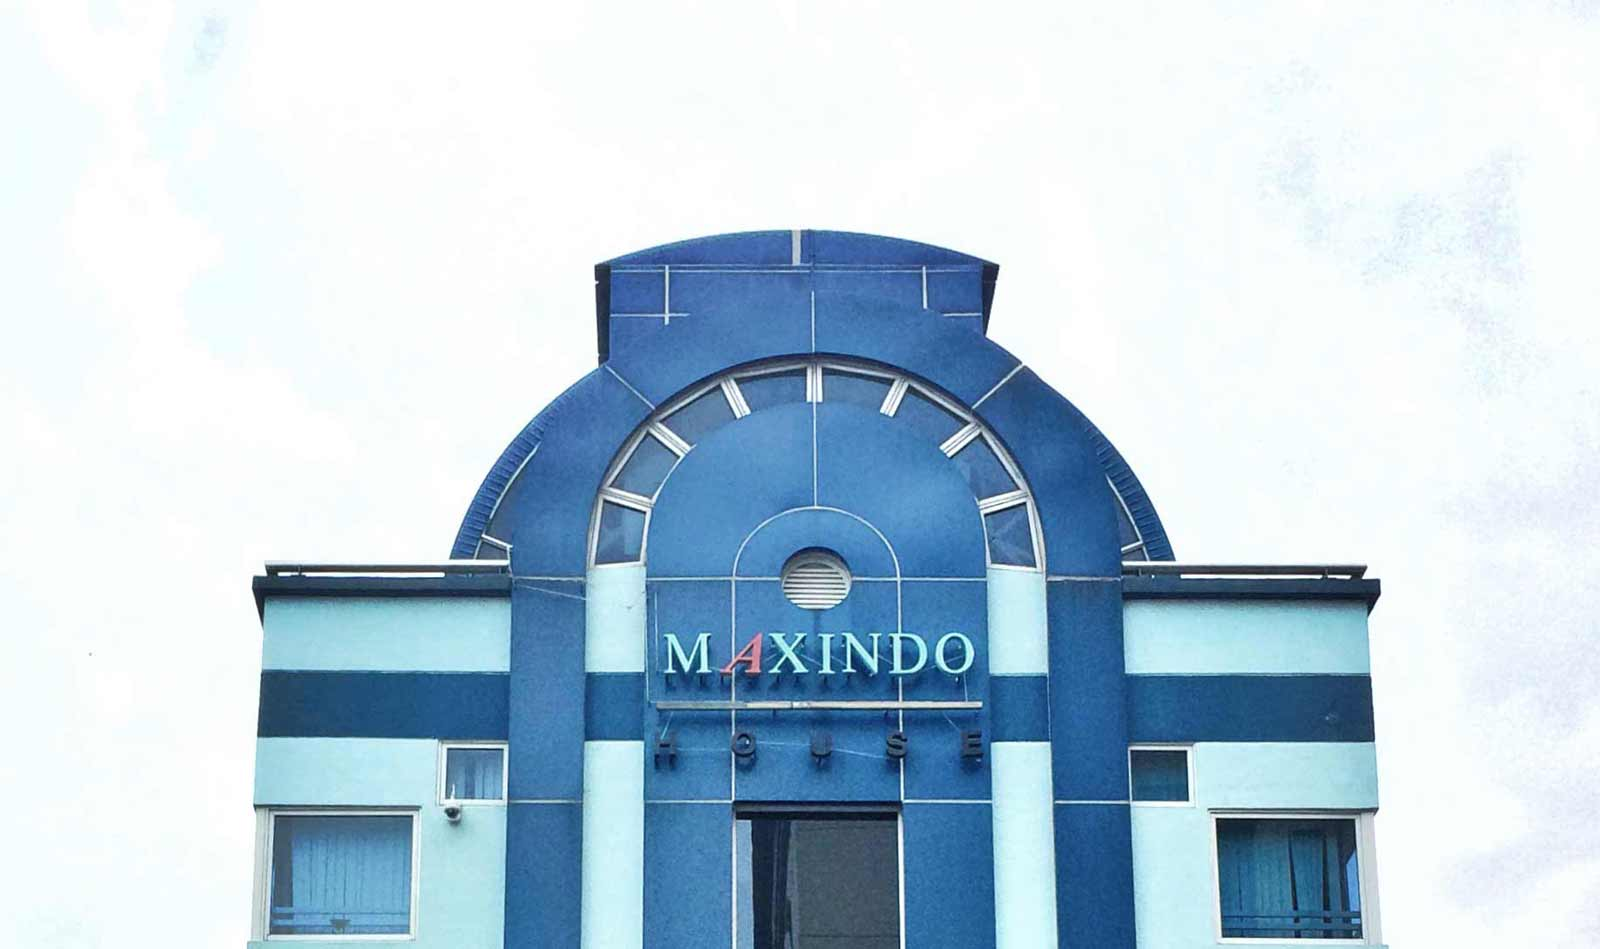 Maxindo House Building